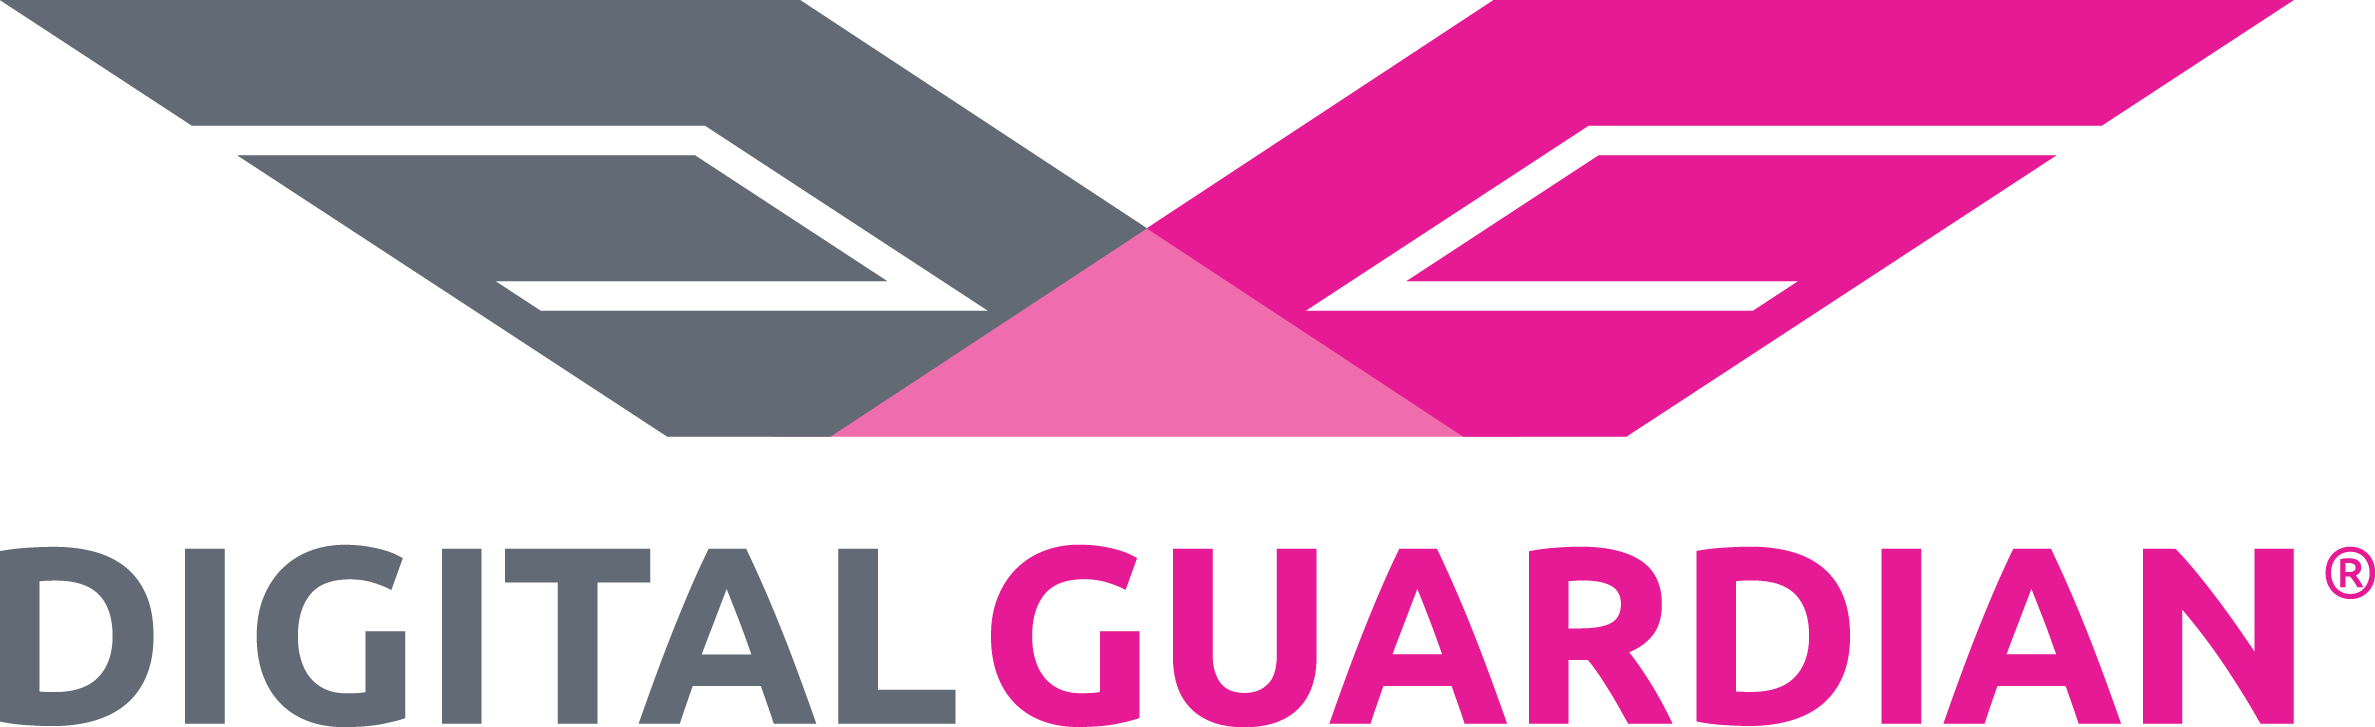 Digital Guardian Endpoint Detection and Response